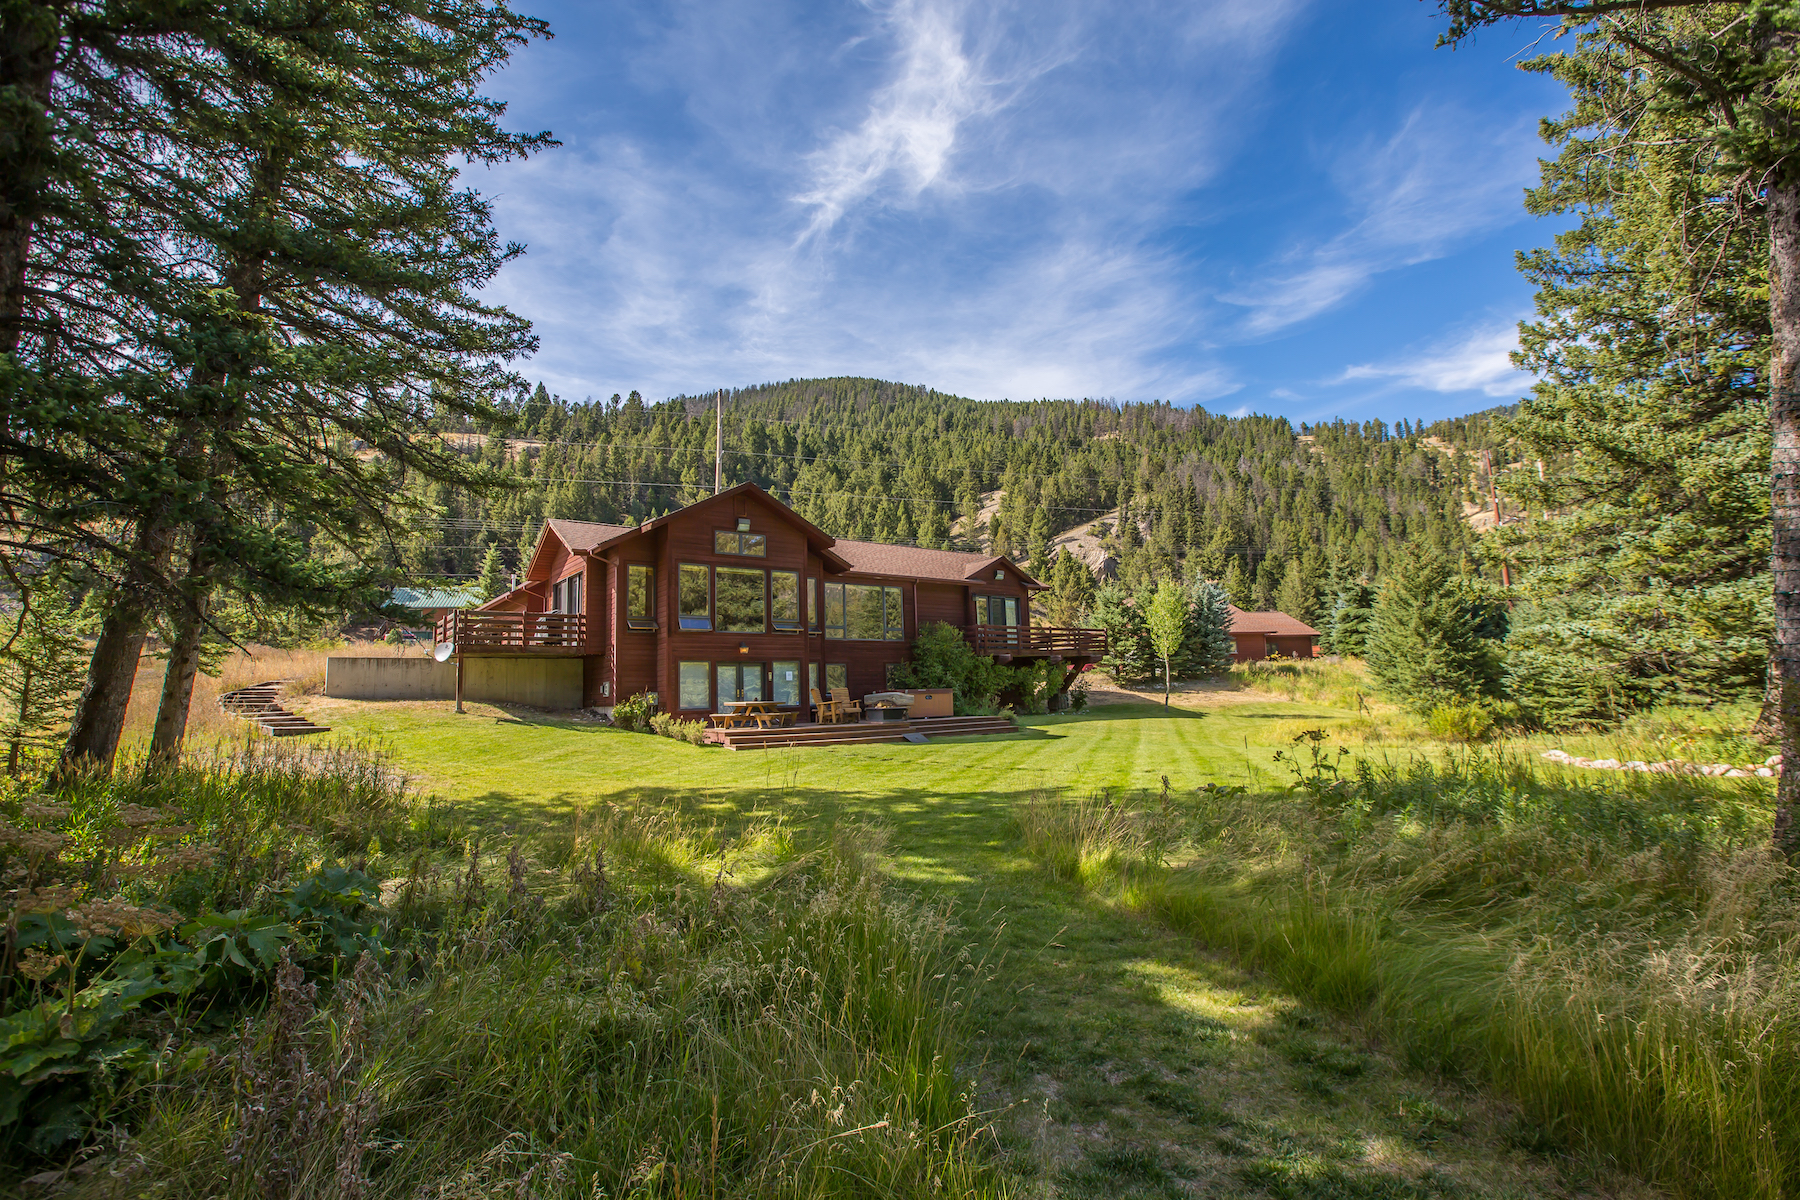 Single Family Home for Active at Gallatin River Property 48042 Gallatin Road Big Sky, Montana 59716 United States